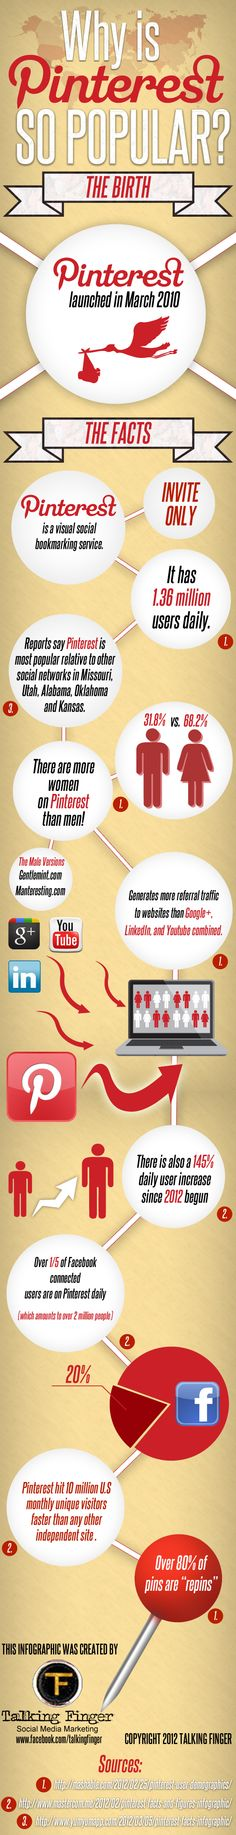 Why is #Pinterest so popular? get great info like this and more at http://blog.hepcatsmarketing.com